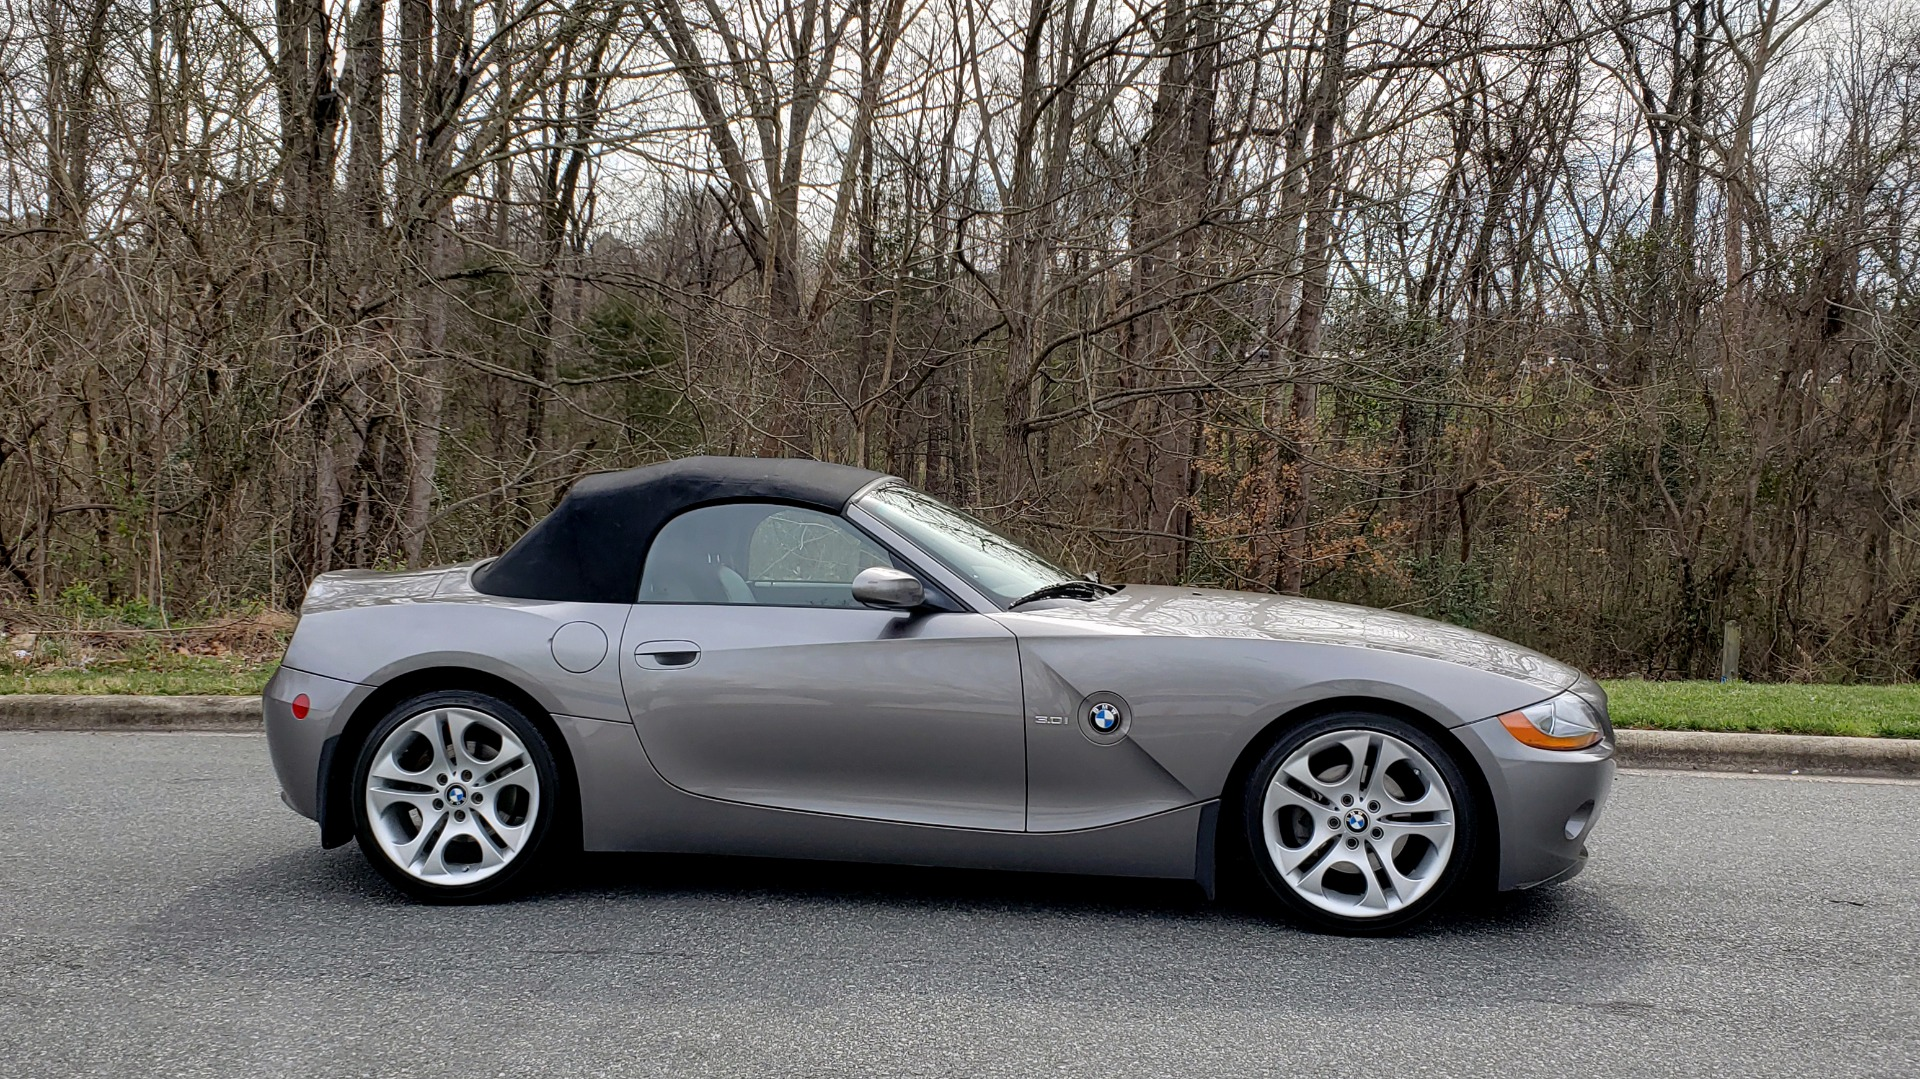 Used 2003 BMW Z4 3.0i ROADSTER / 6-SPD MAN / PREMIUM PKG / SPORT PKG / HTD STS for sale Sold at Formula Imports in Charlotte NC 28227 8